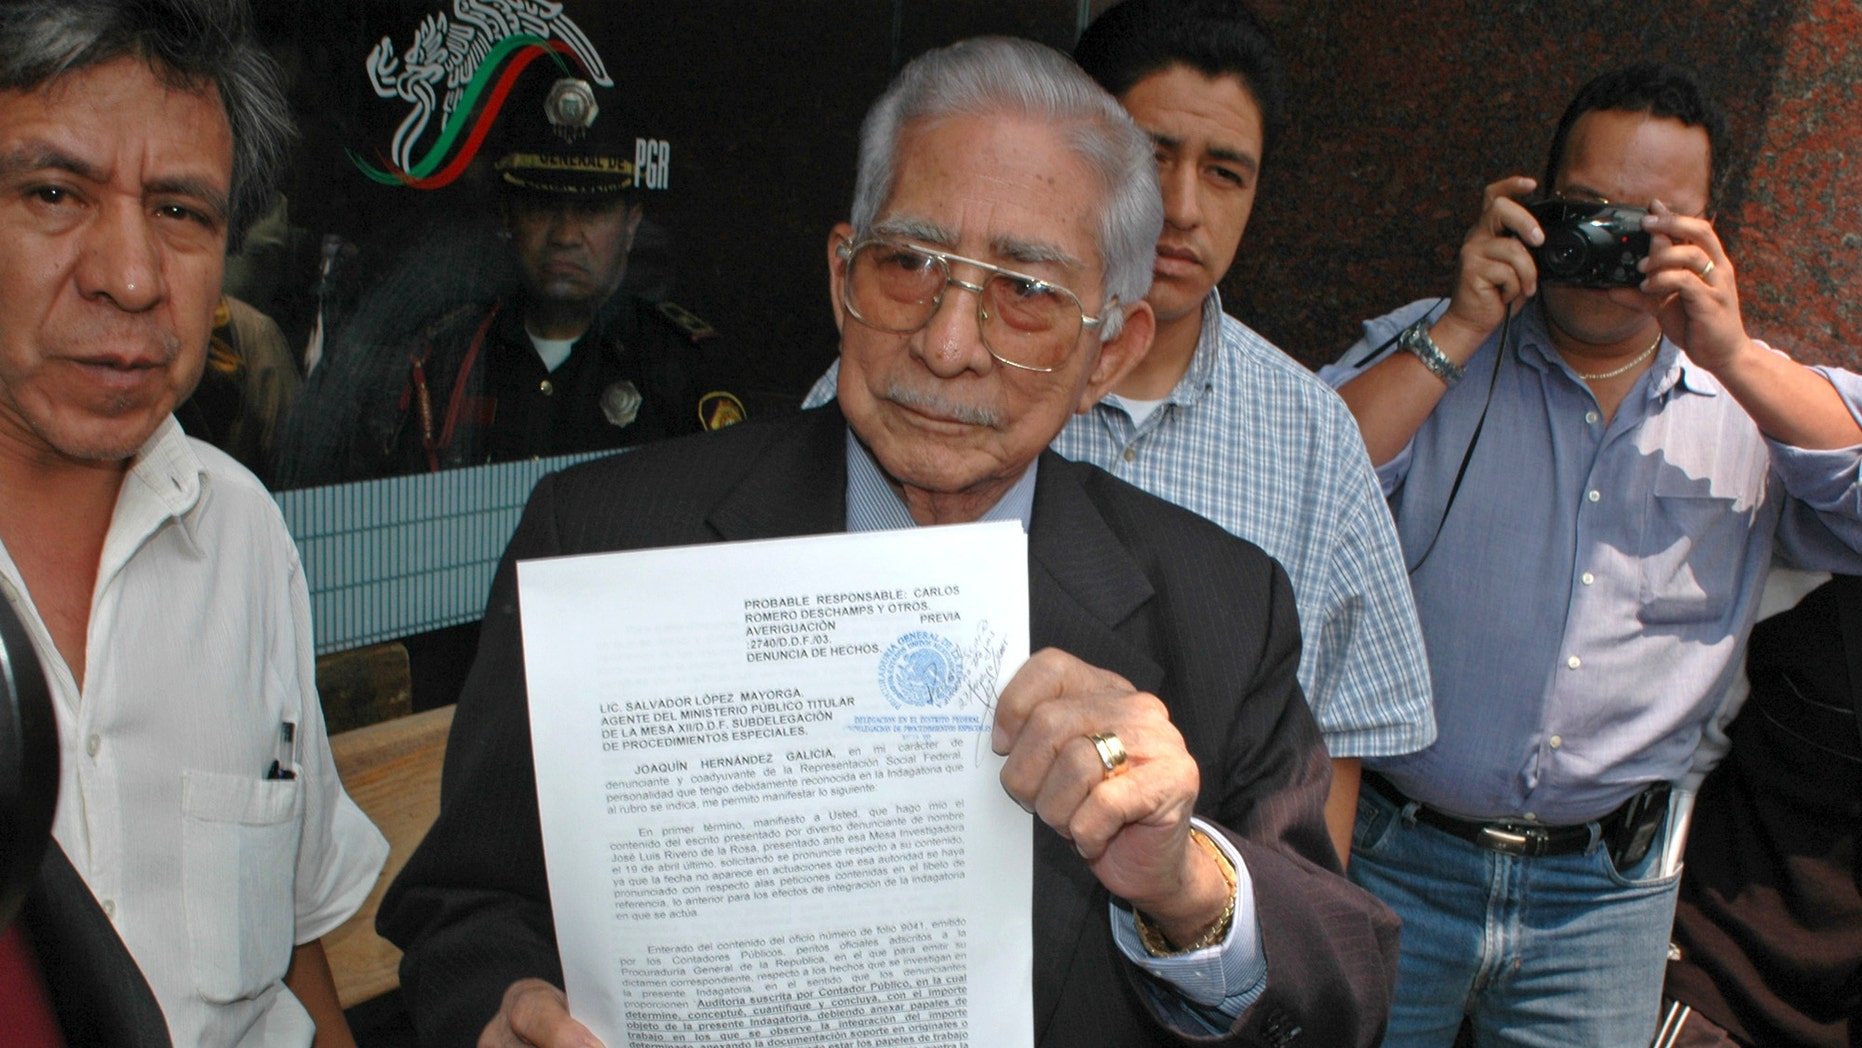 "FILE - In this May 27, 2005 file photo, the former boss of Mexico's powerful oil workers union, Joaquin Hernandez Galicia, holds up a lawsuit on corruption charges he filed against the current union boss of Pemex outside a courthouse in Mexico City. Hernandez was an old-style Mexican labor leader who became one of the country's most powerful and wealthiest men through patronage, corruption and strong-arm tactics. A son of the once-feared boss says Hernandez, known as ""La Quina,"" has died after spending several days in a hospital in the northern city of Tampico for stomach problems. He was 91. (AP Photo/Roberto Velazquez, File)"